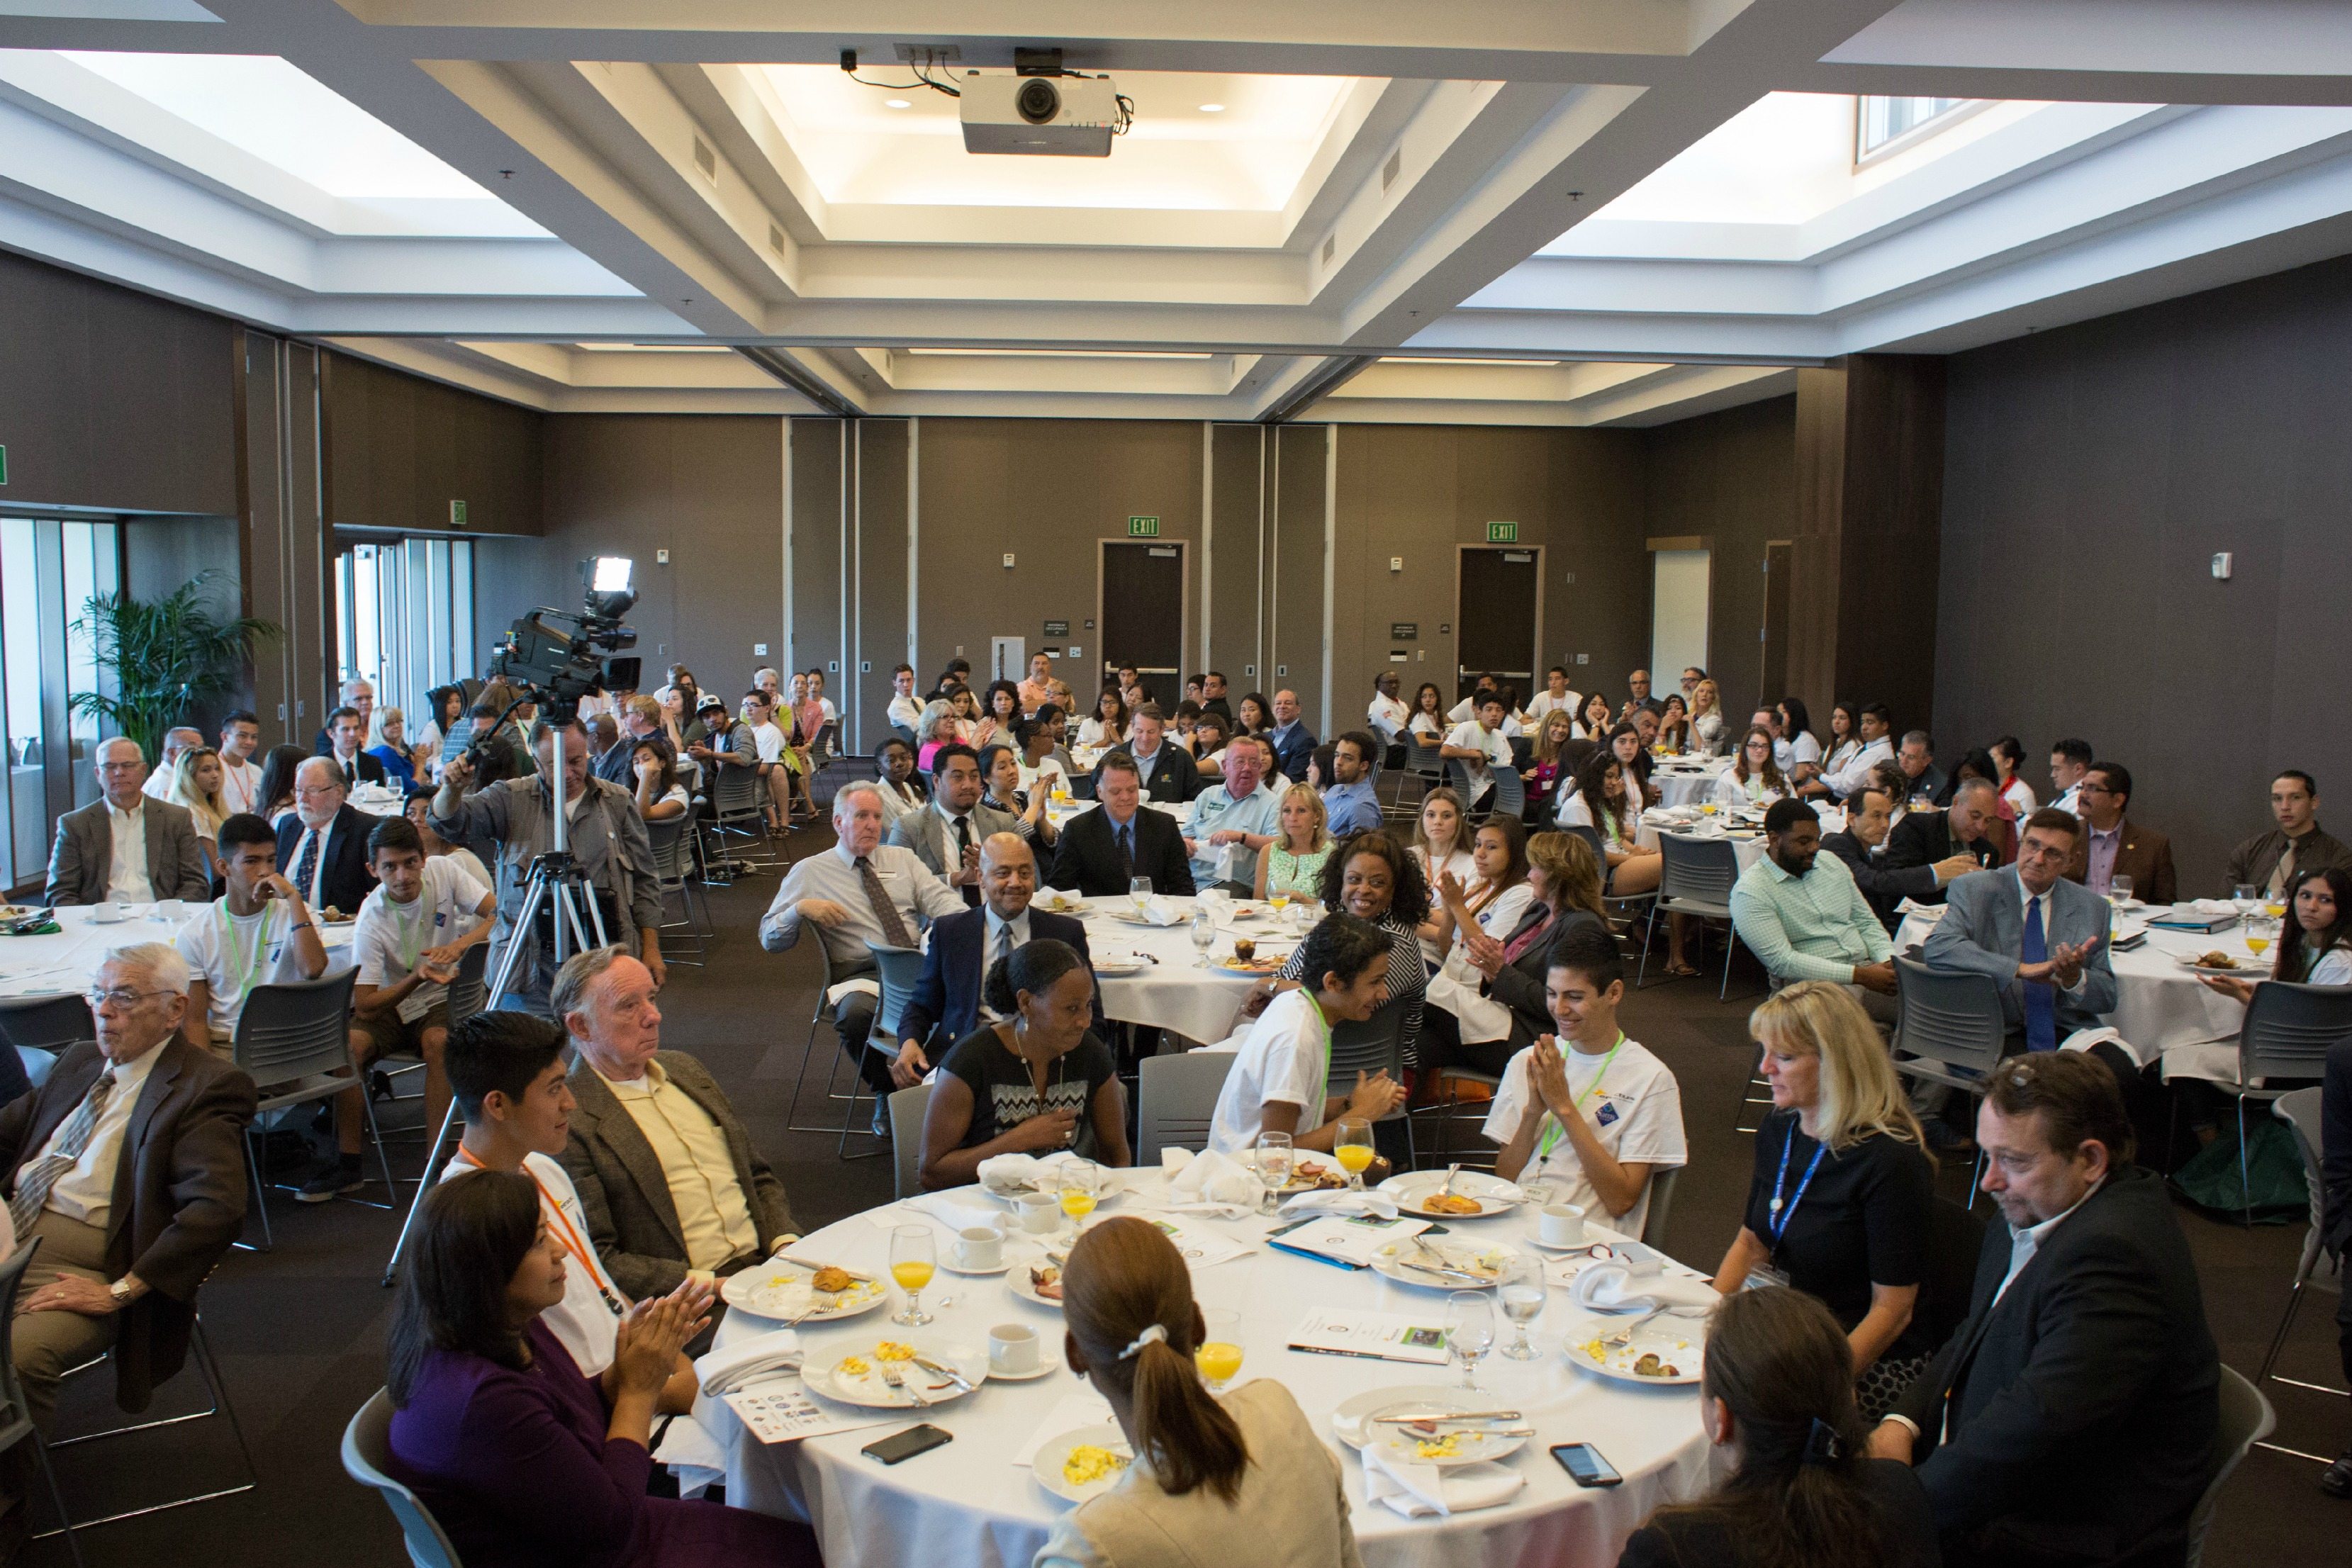 Participants at the REACH breakfast event.